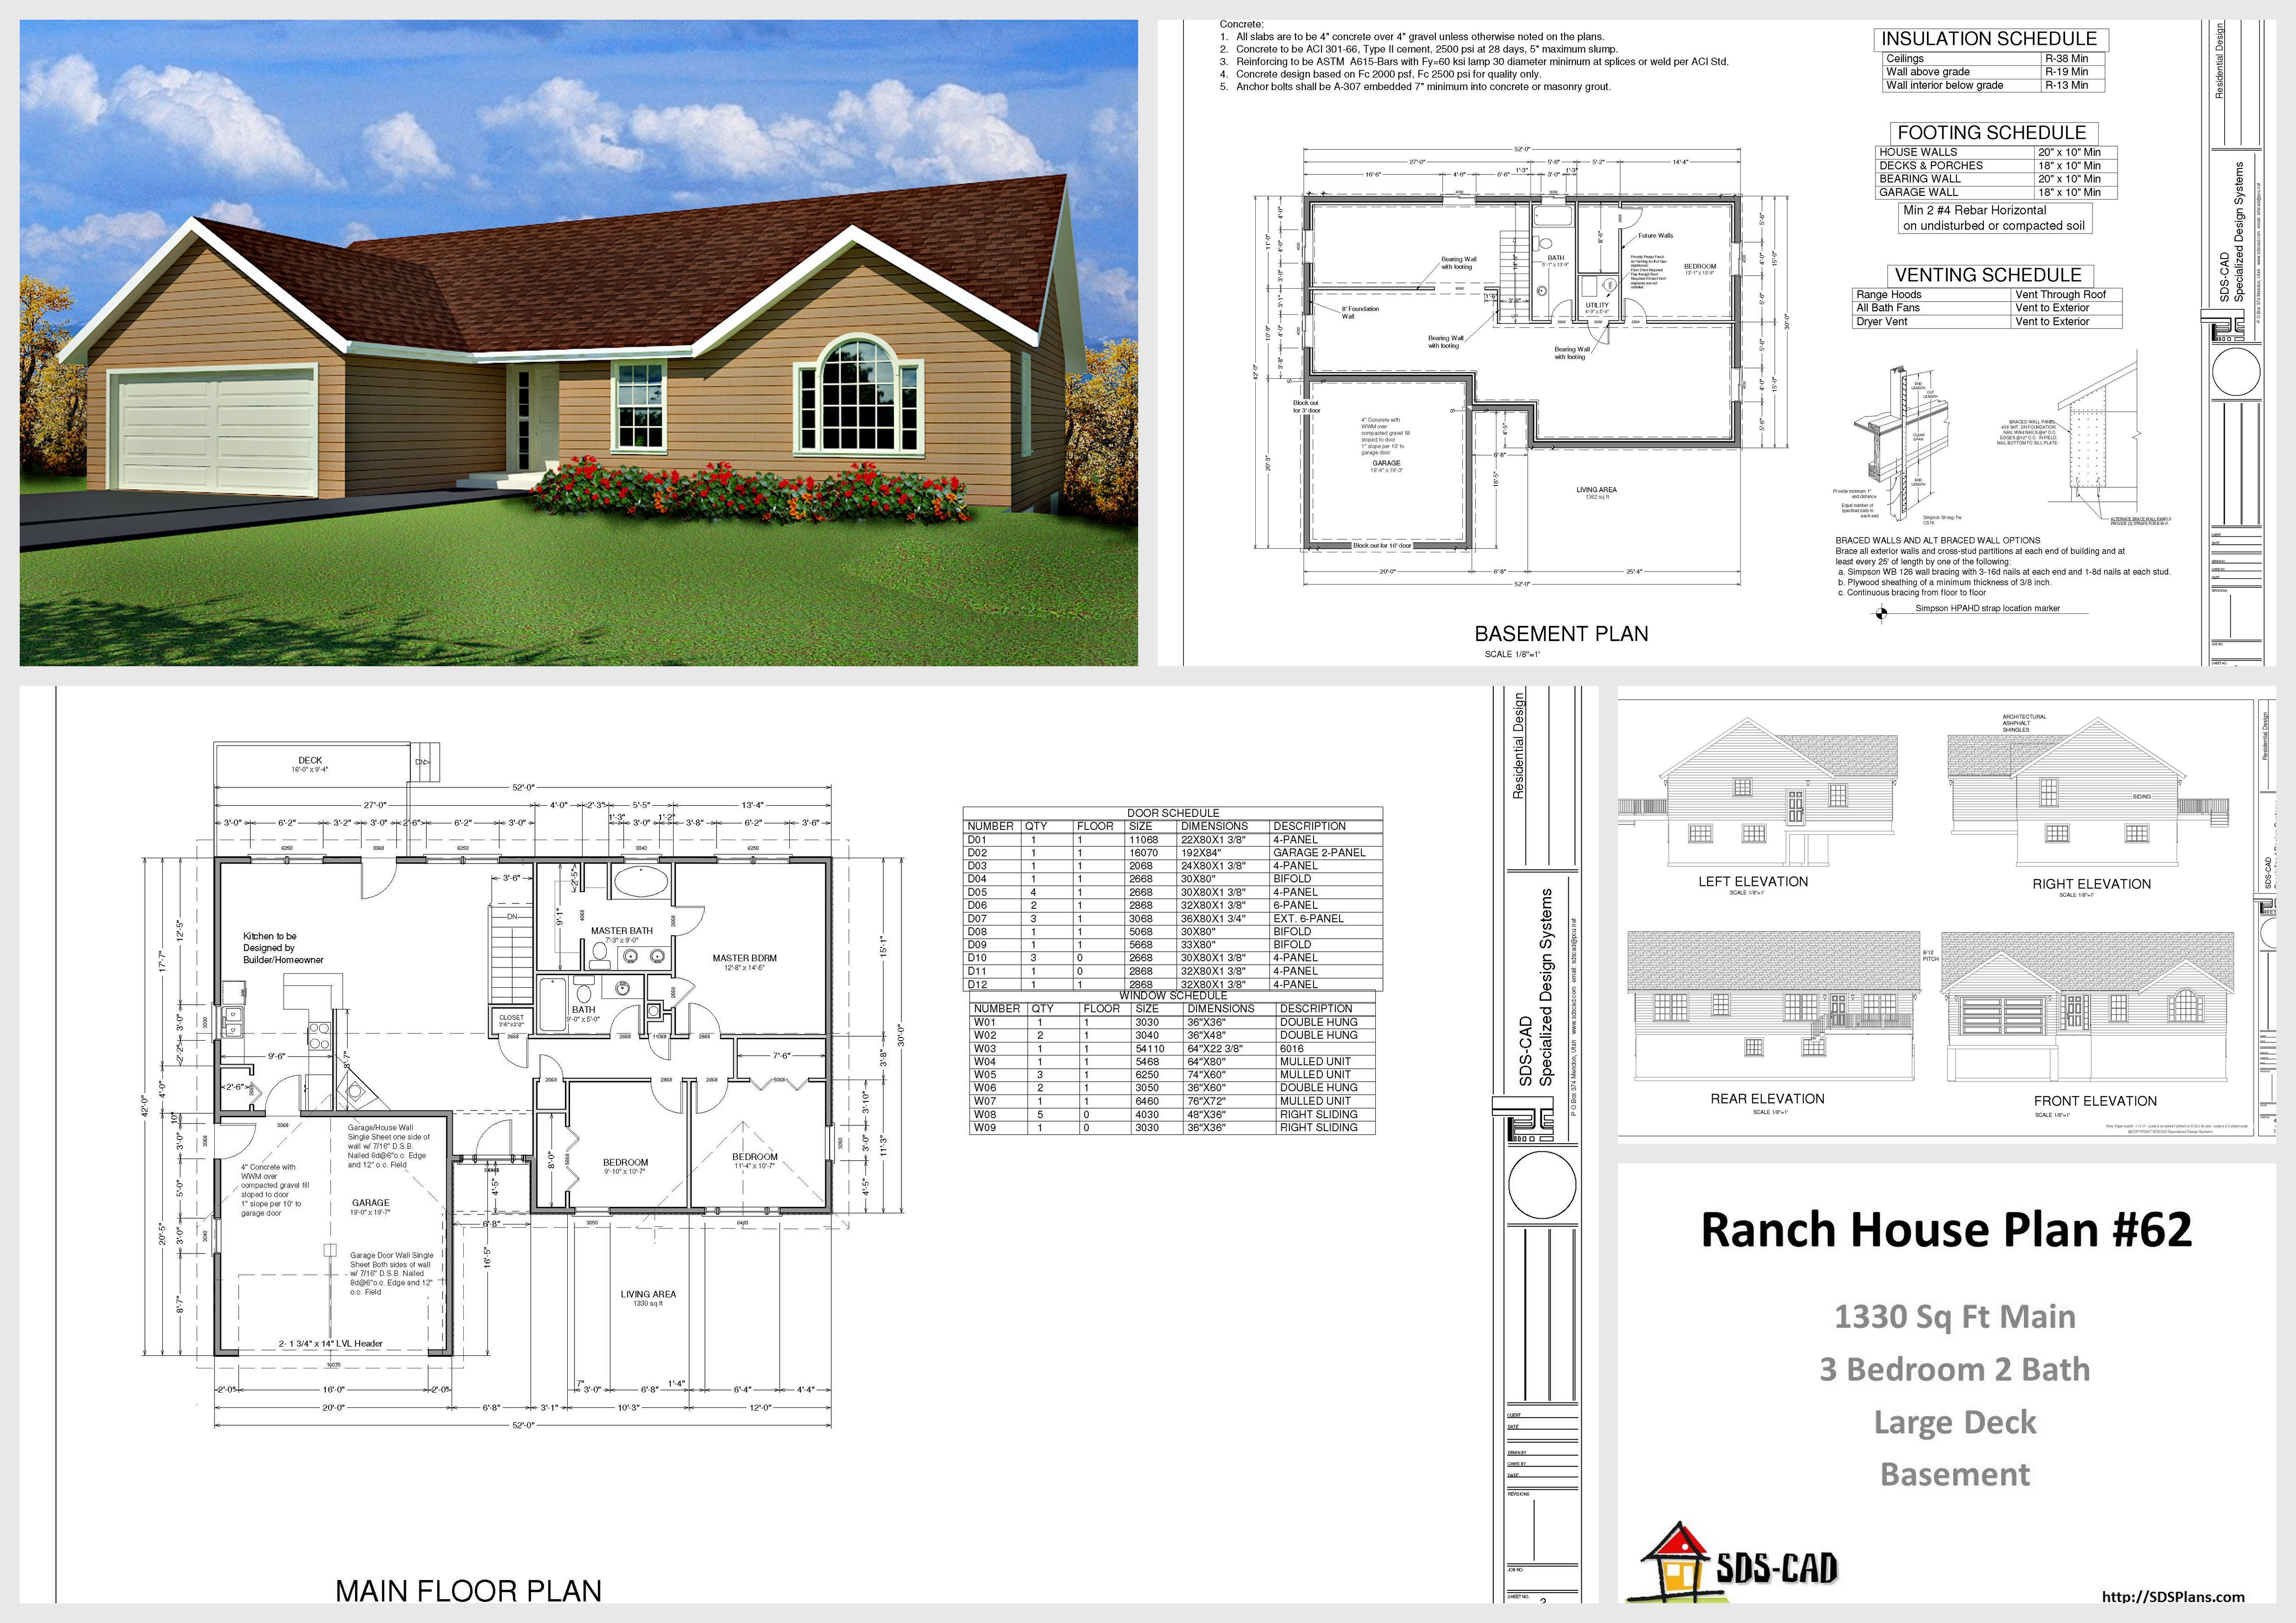 spec house plans. Free House Plans For Autocad 2 And Cabin Dwg plans plan custom home design autocad dwg and pdf bddbefedb cad